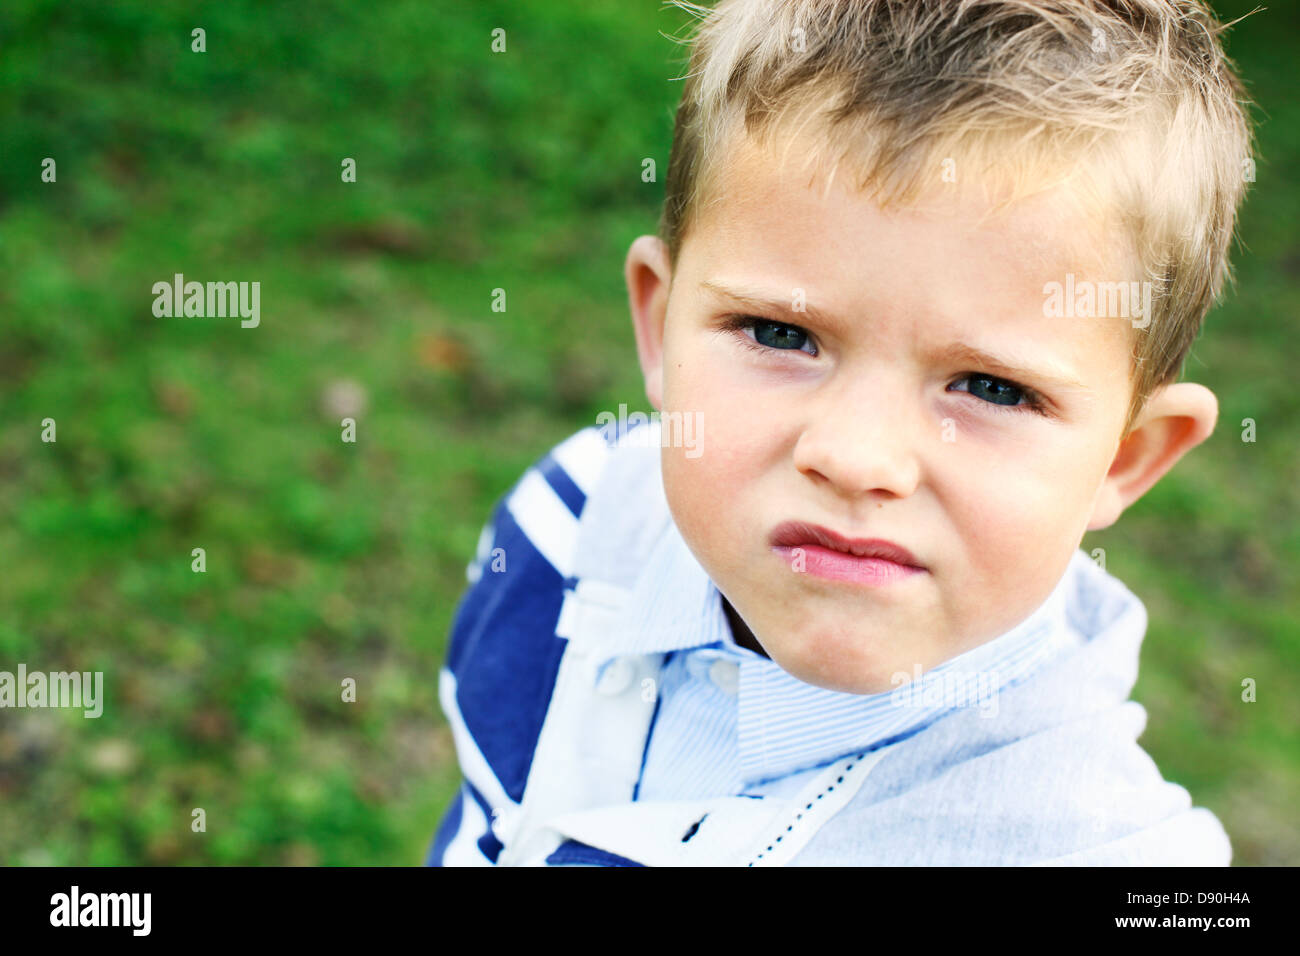 Boy scowling, looking at camera - Stock Image